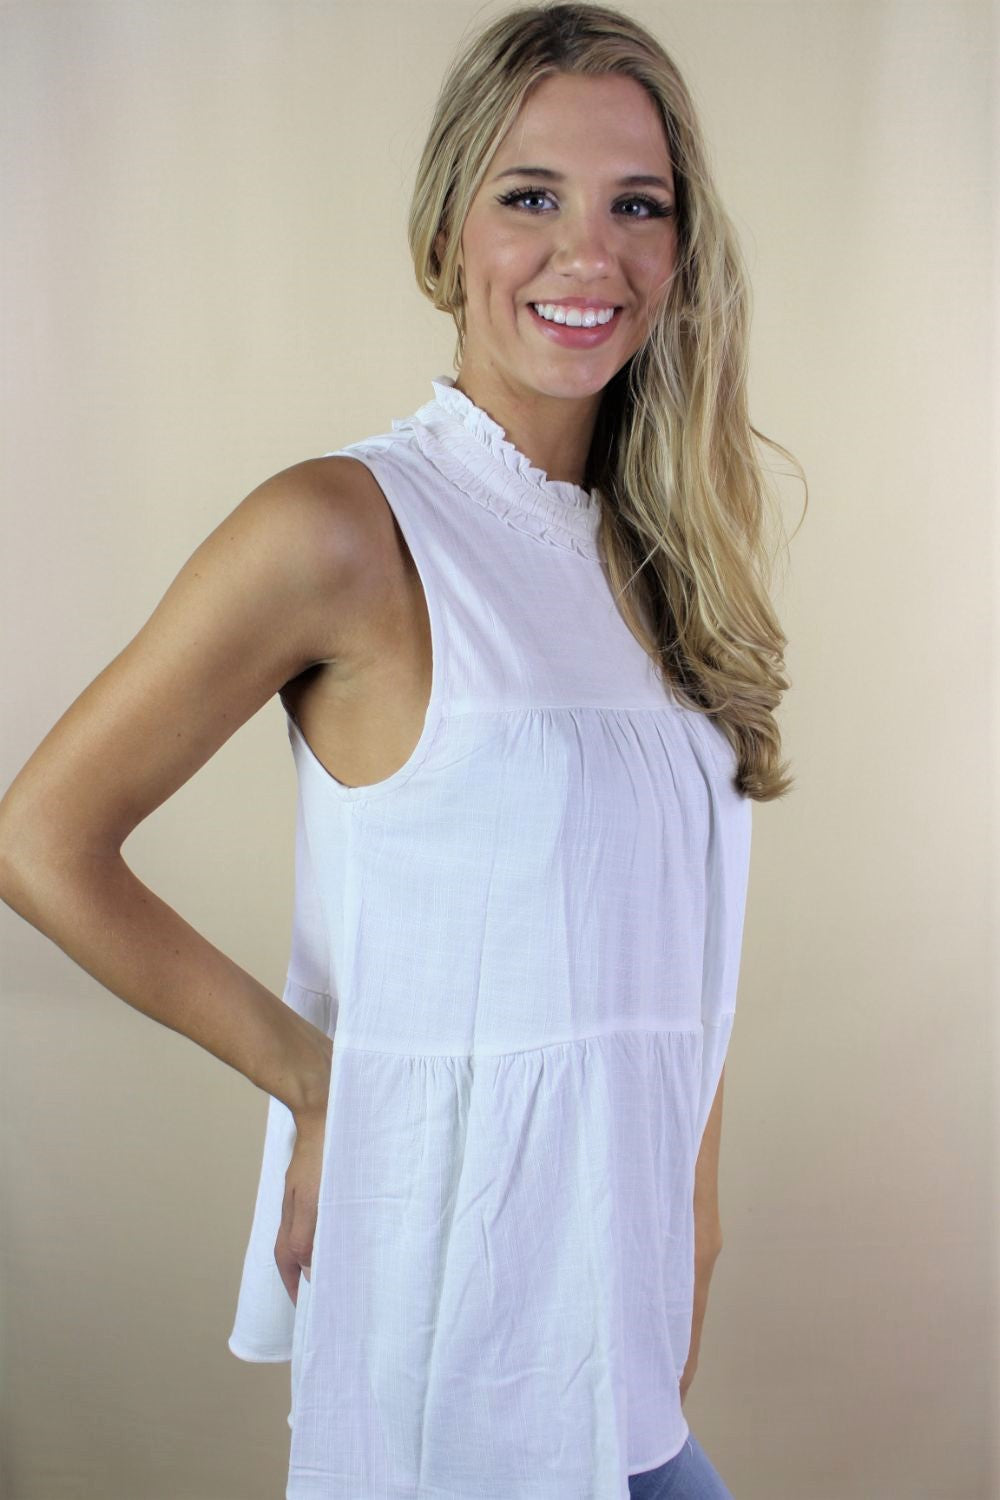 Women's Sleeveless Top with Neck Detail